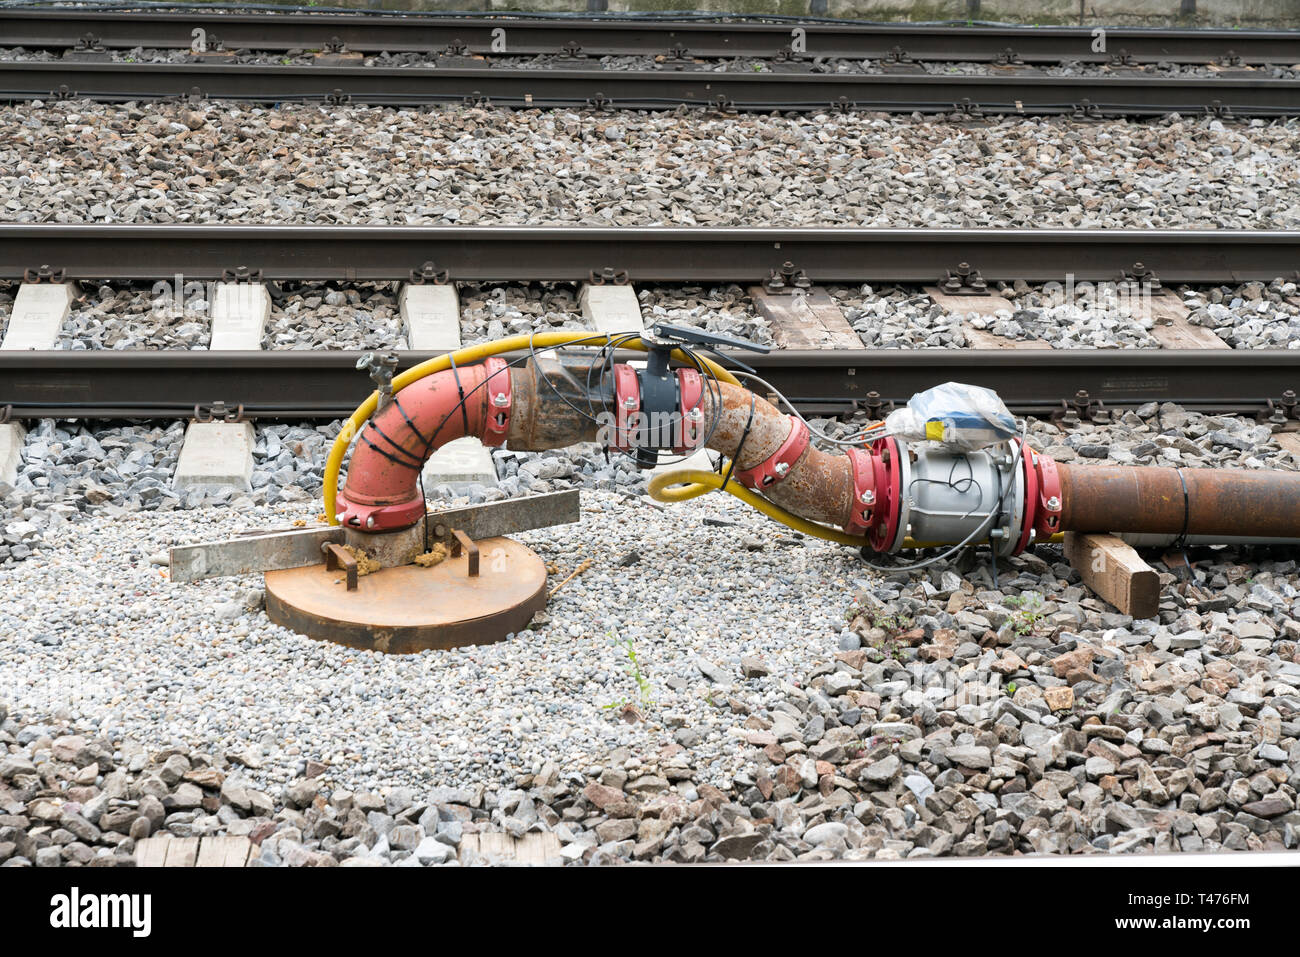 pipe and valve system with sensors and electrical wiring between railroad  tracks as a temporary supply system during construction and renovation